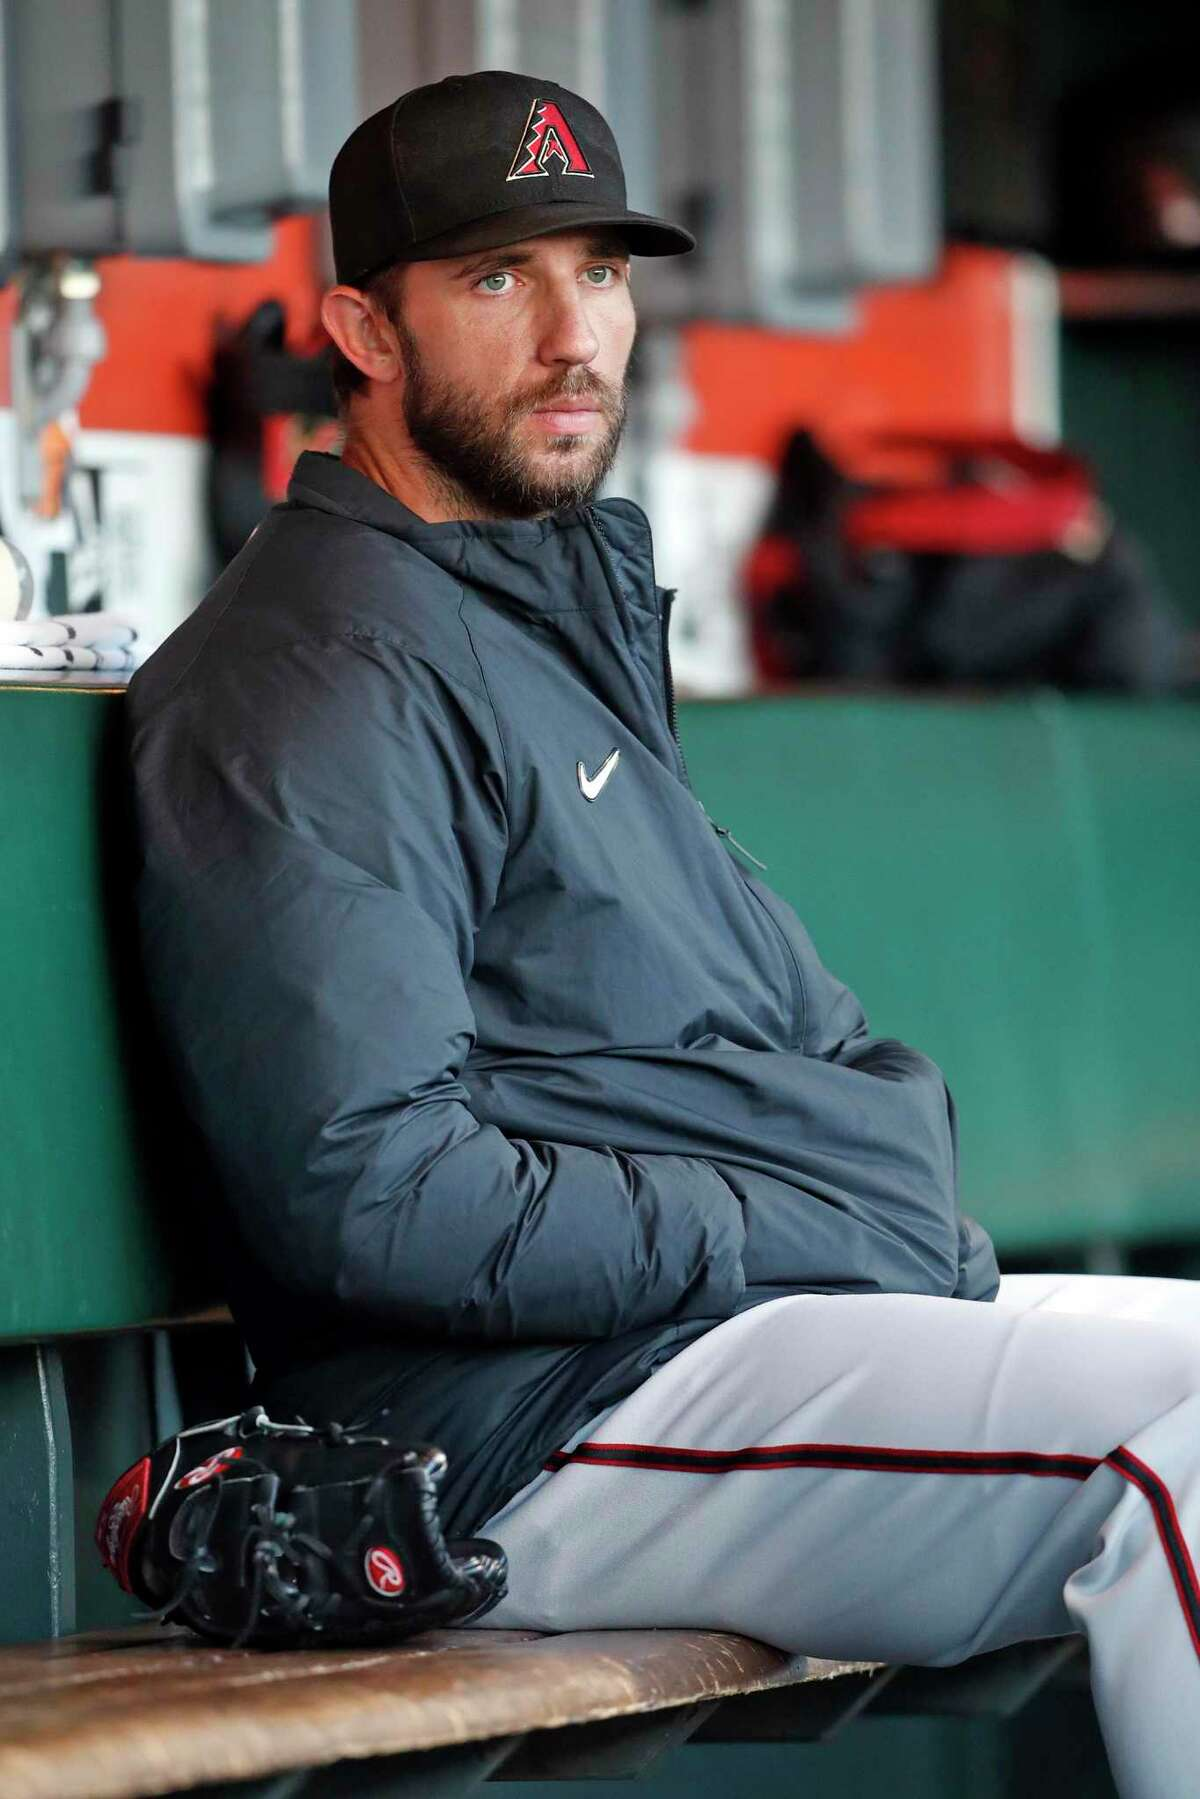 Arizona Diamondbacks' Madison Bumgarner sits in the dugout before warming up for his start against San Francisco Giants in MLB game at Oracle Park in San Francisco, Calif., on Thursday, September 30, 2021.